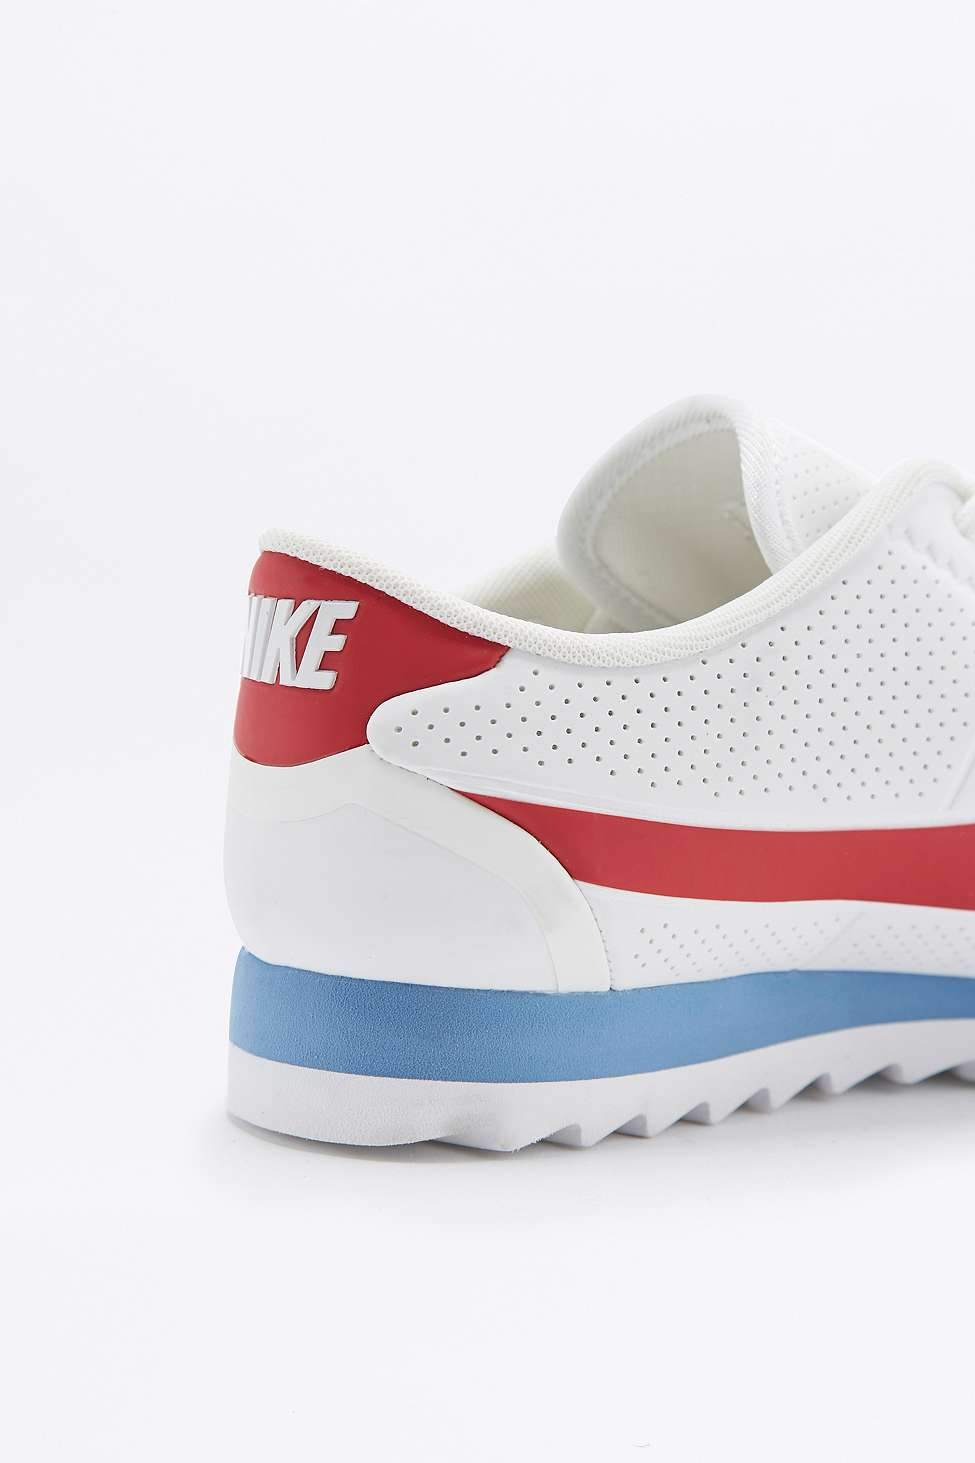 Nike Cortez Ultra Moire Red White And Blue Sneakers